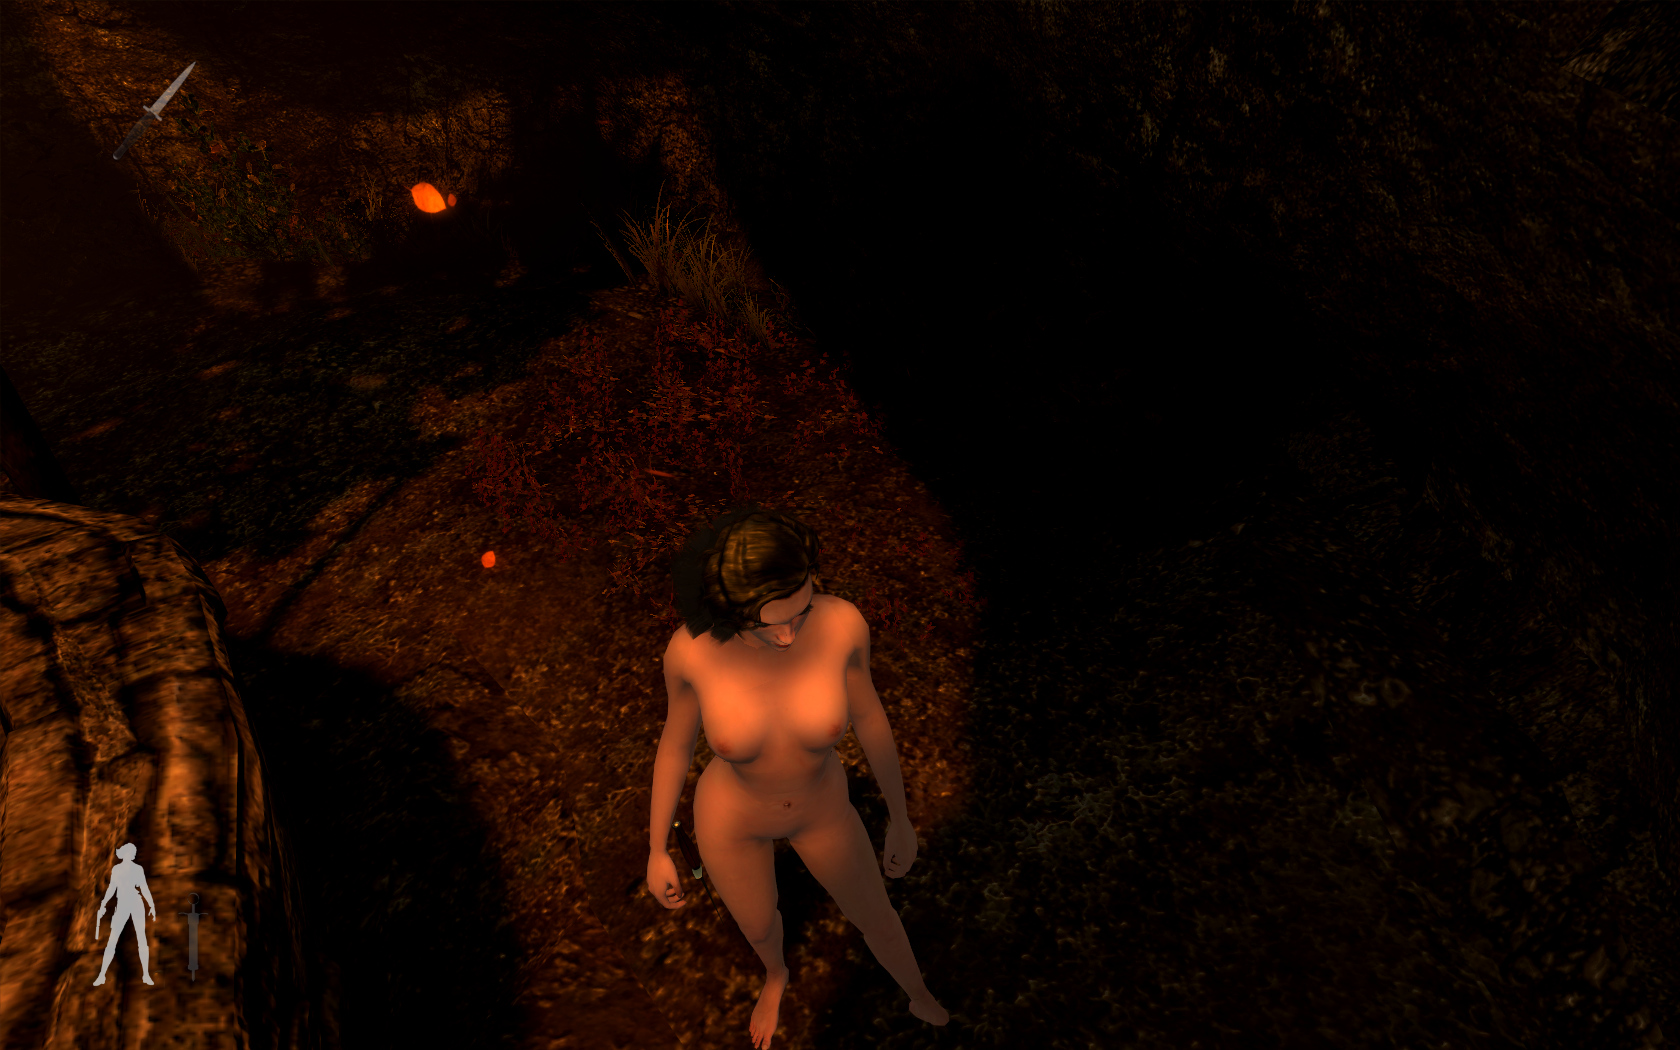 Assassin's creed nude mod pics smut thumbs